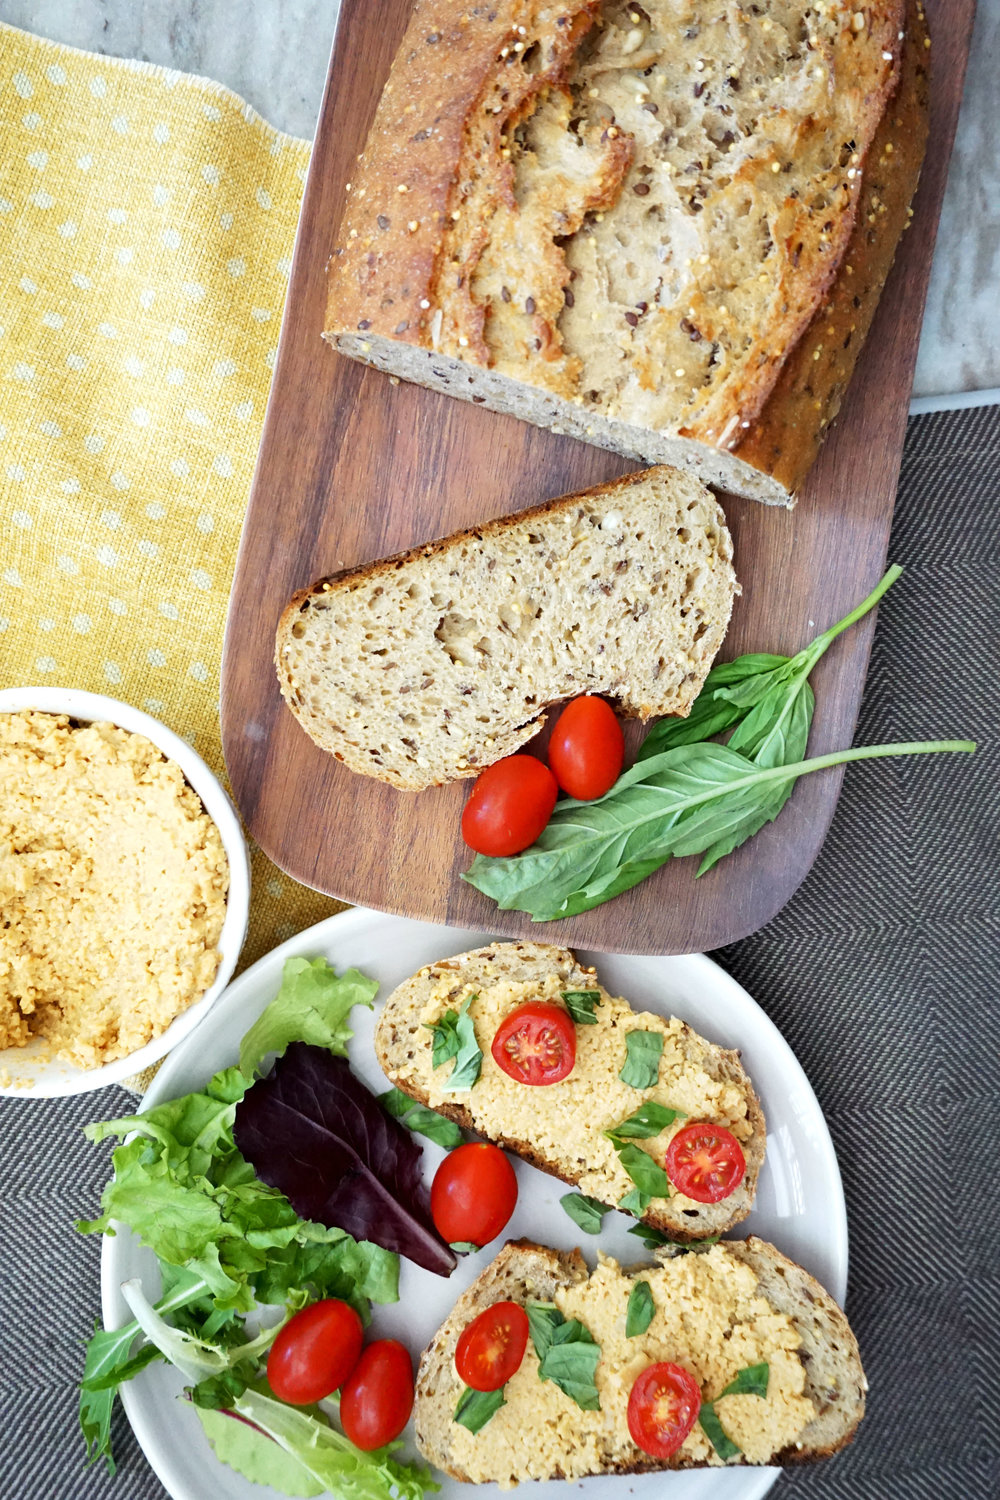 Tomato Basil Toasts w/ Cashew Cheeze Spread (Vegan)